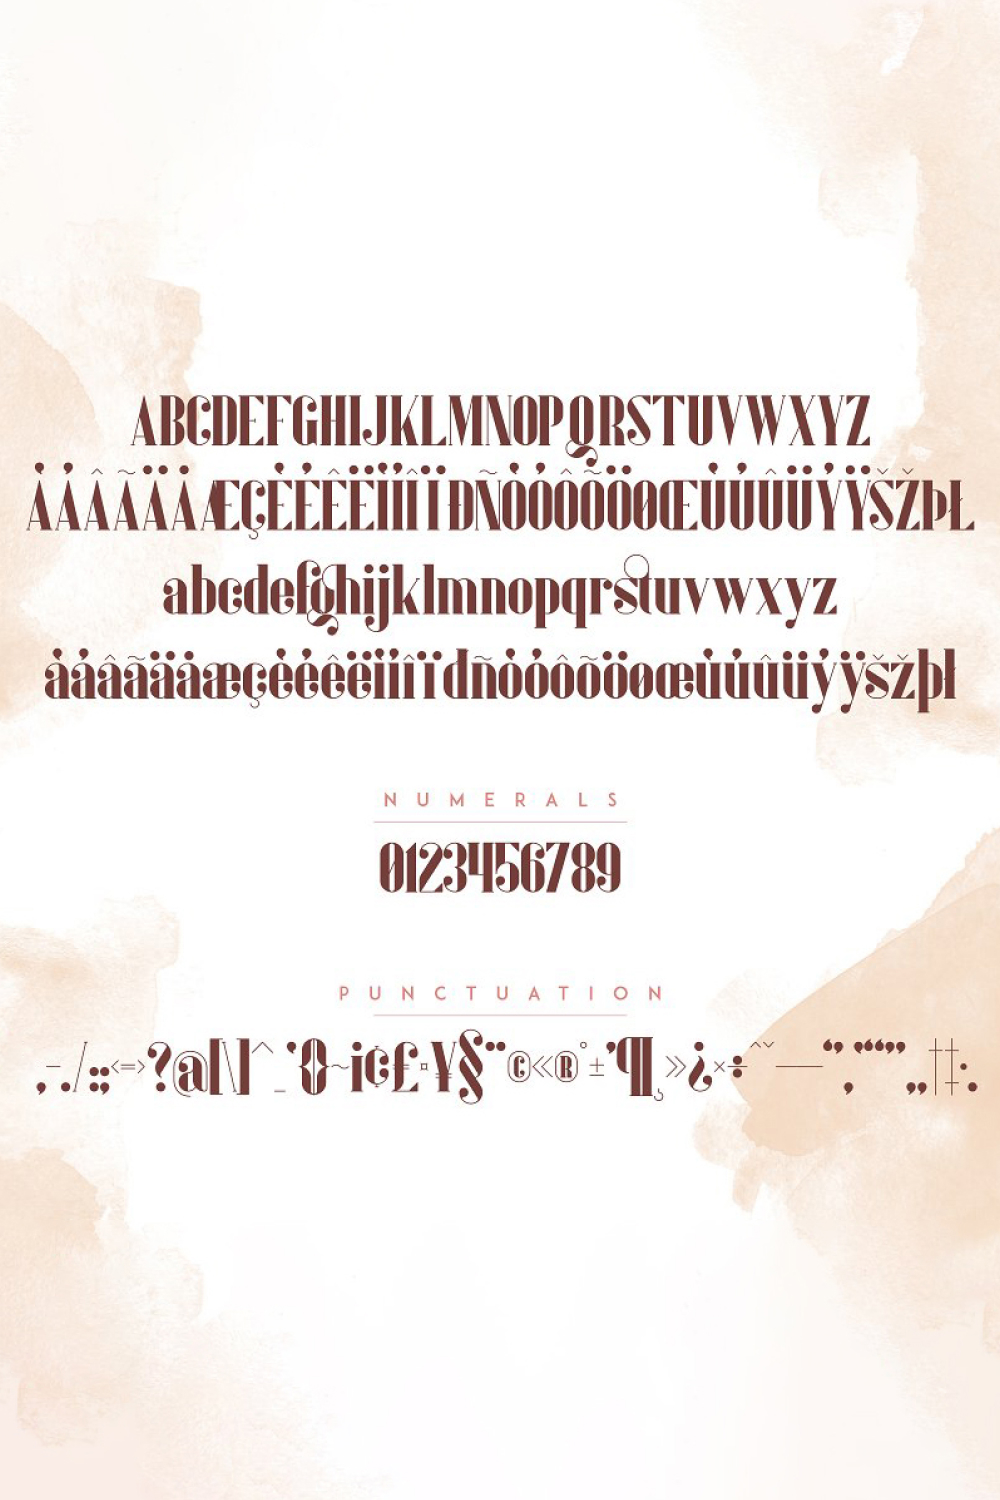 Inure – Serif Typeface More Pinterest images.